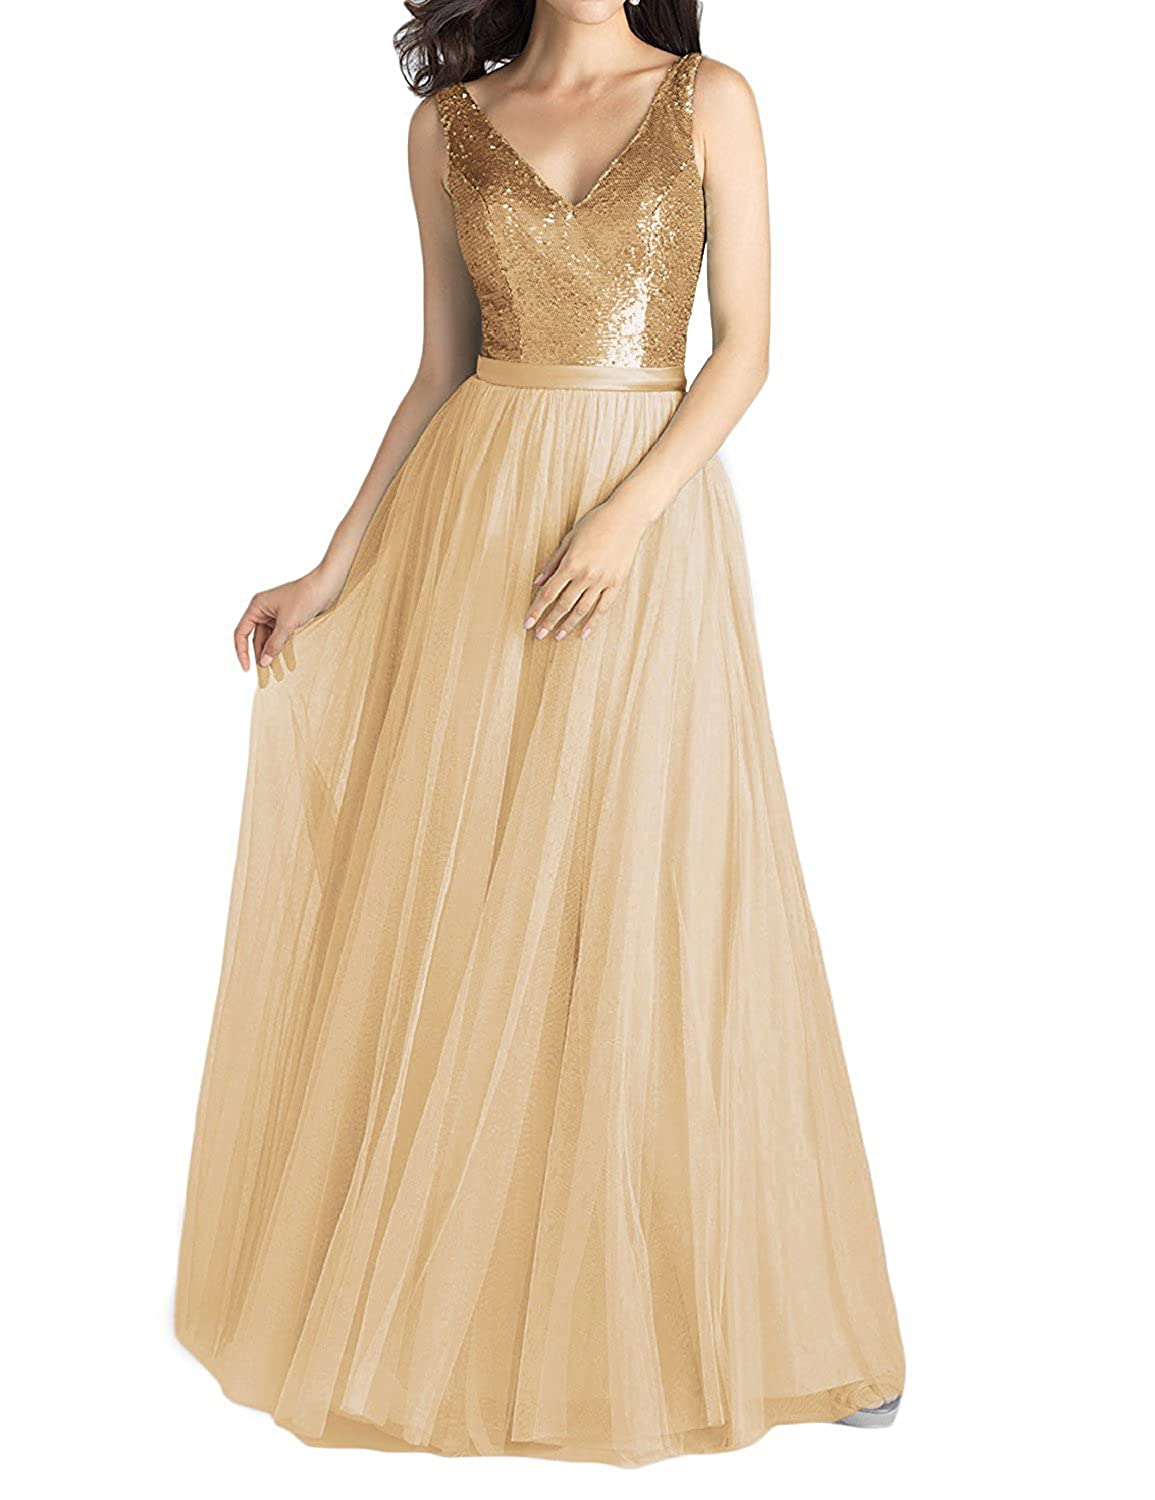 Pretygirl Womens V Neck Sequined Tulle Bridesmaid Dress A Line Long Prom Evening